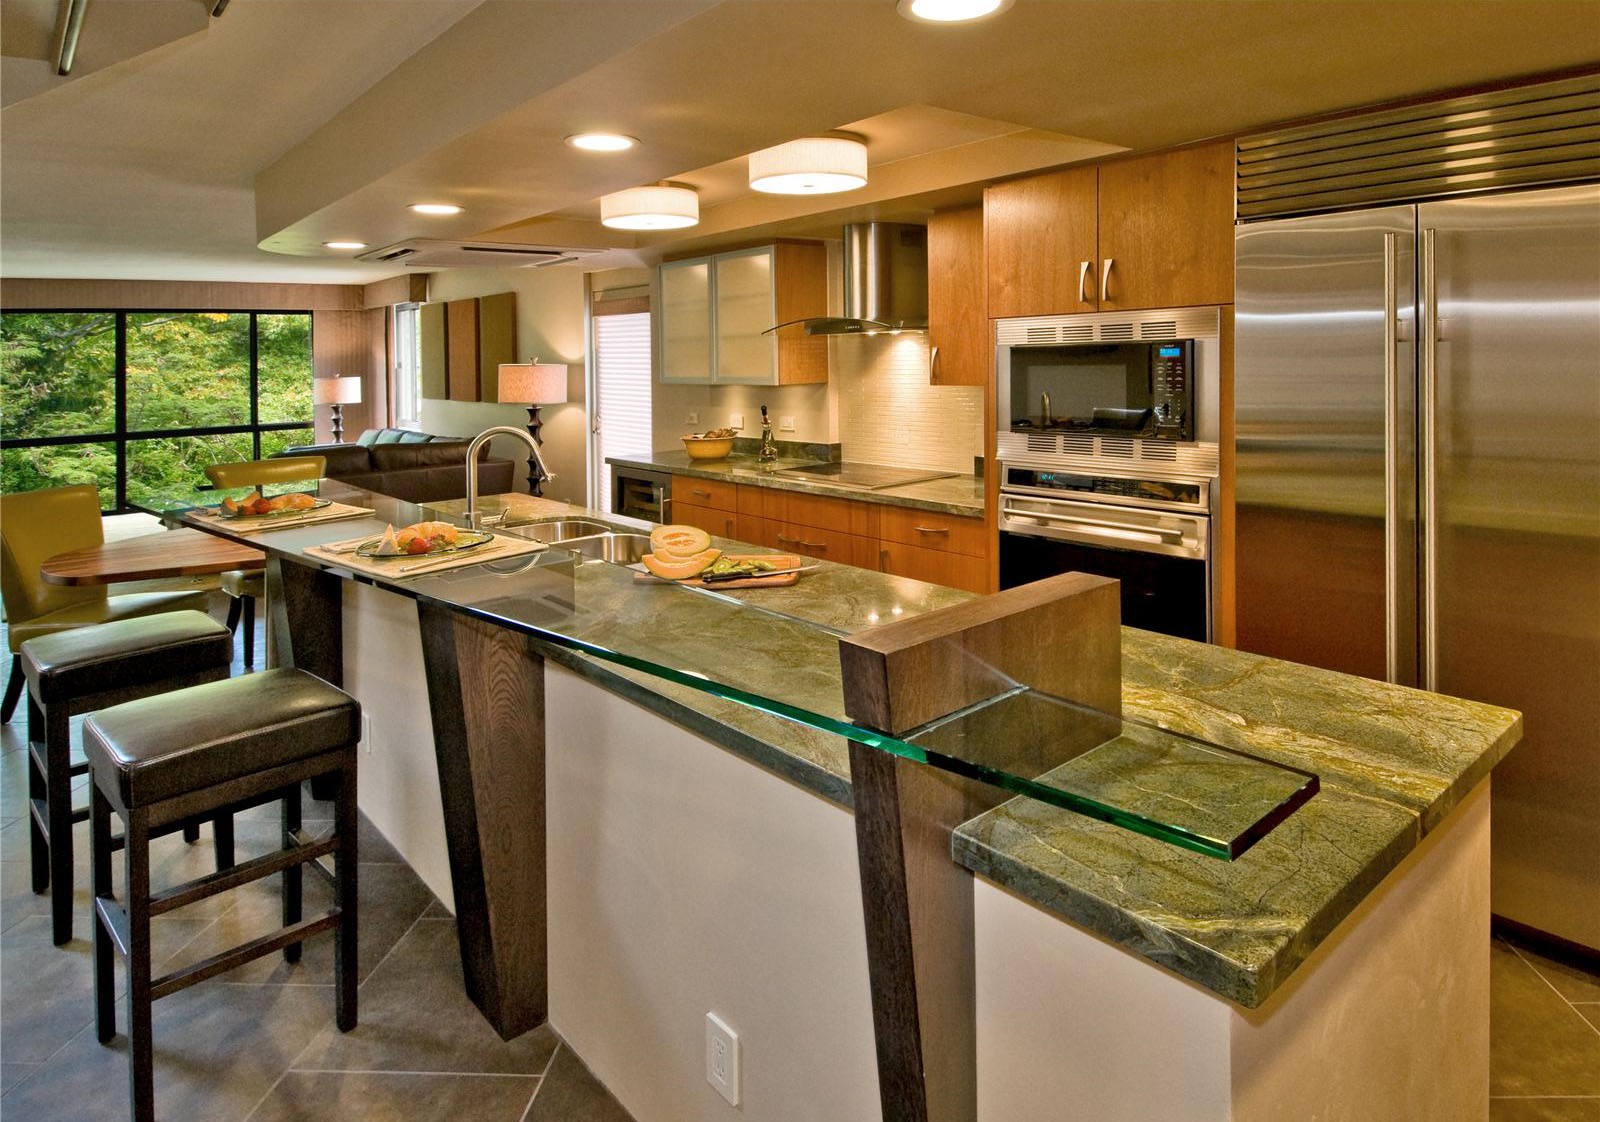 creative-open-kitchen-with-breakfast-counter-designs-on-kitchens-with-open-contemporary-kitchen-design-ideas